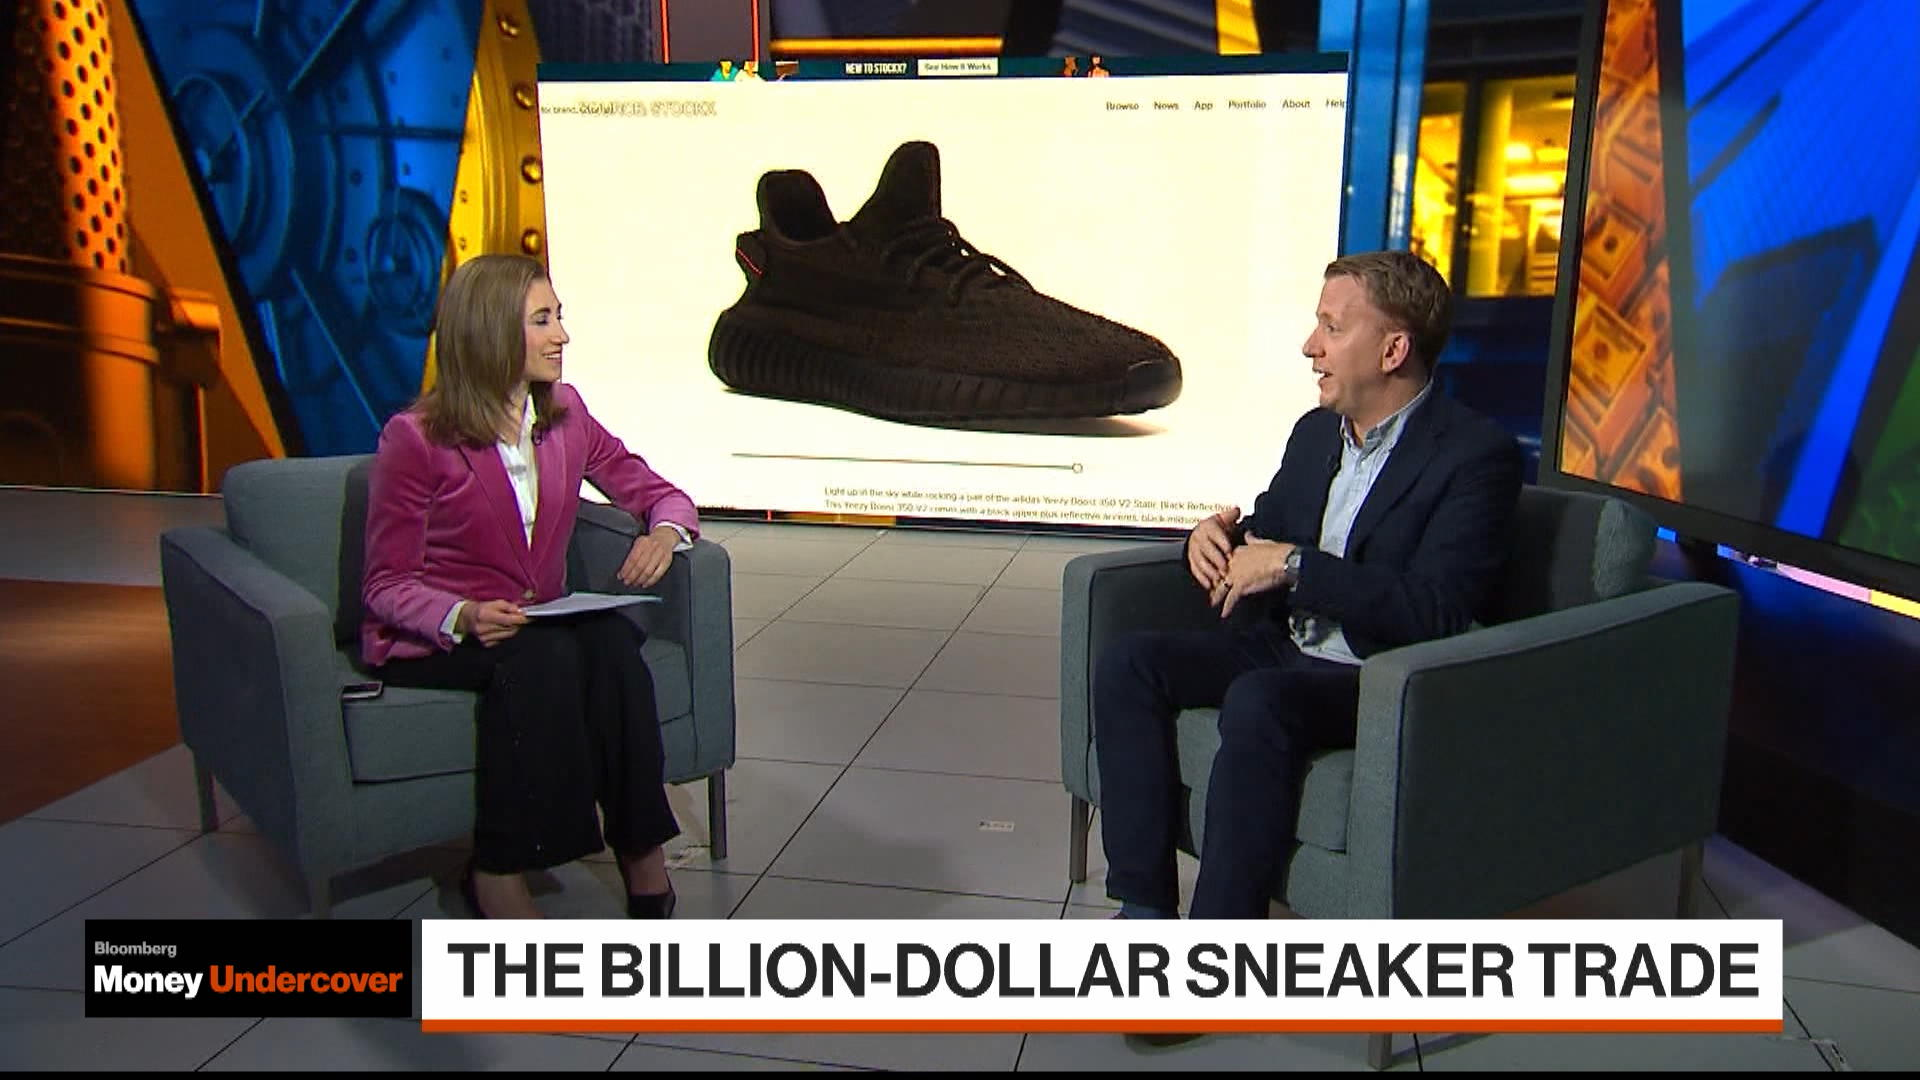 China's Sneakerheads Chase 6,600% Returns Flipping Air